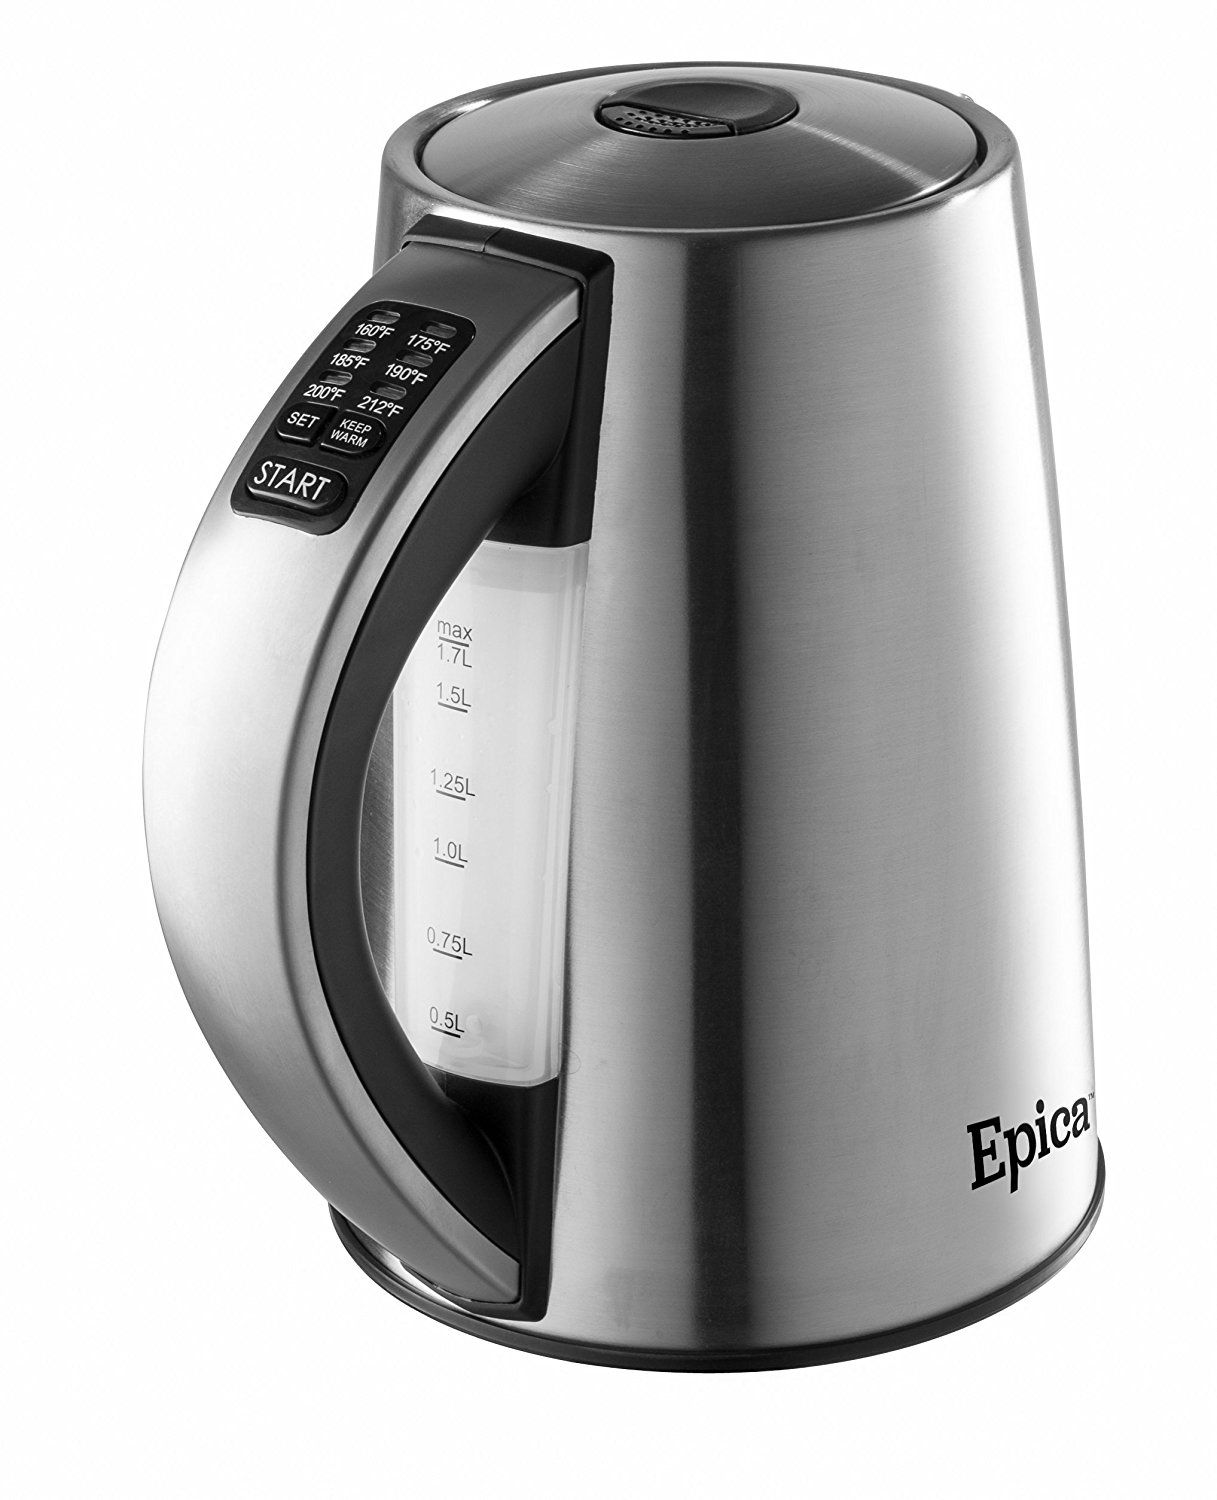 Review Epica Electric Kettle – I use it everyday